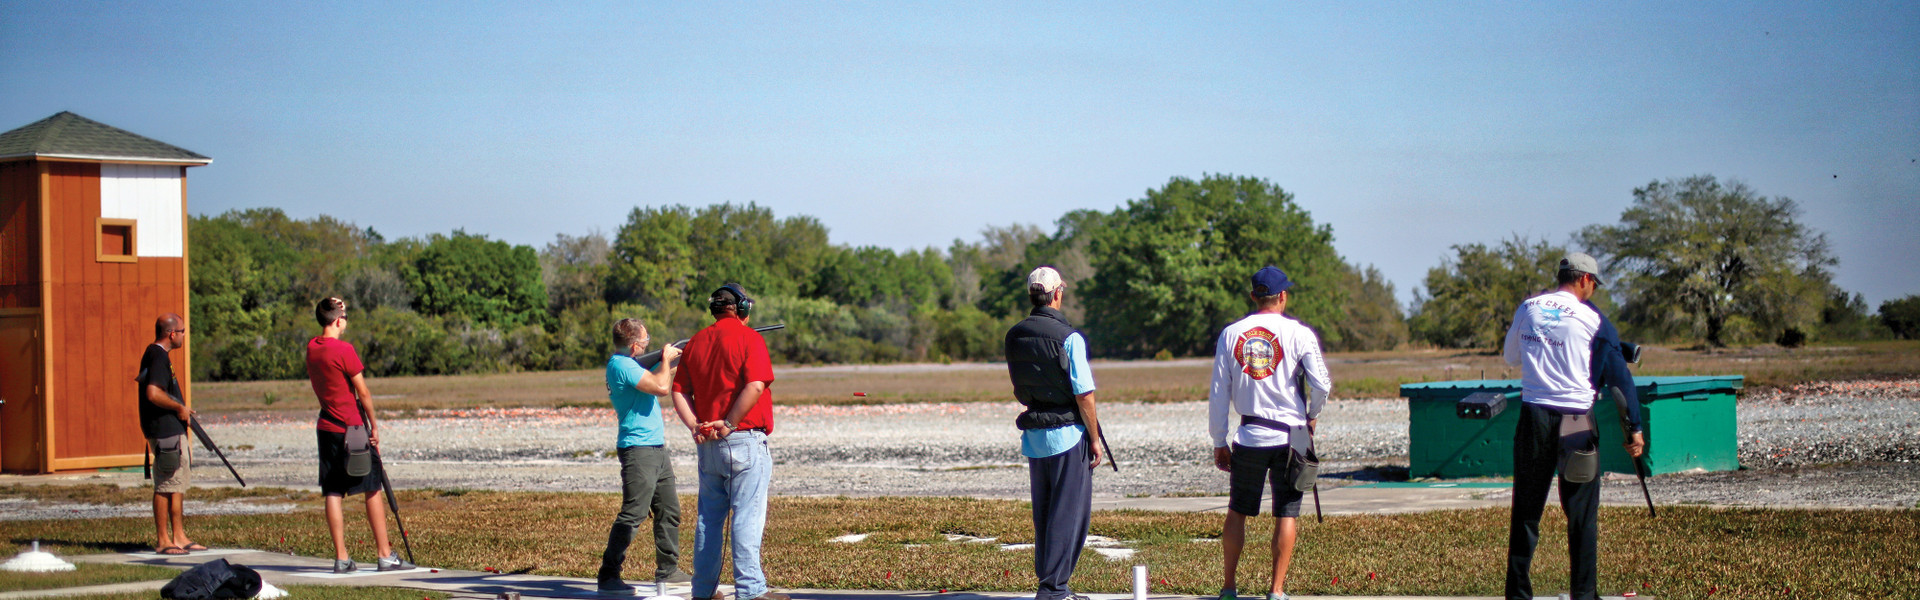 Beginner or expert shooters can enjoy the Trap and Skeet Range at Westgate River Ranch Resort & Rodeo in Florida. Rent shooting equipment or bring your own. Westgate River Ranch can also host your trap and/or skeet association/group at our range.